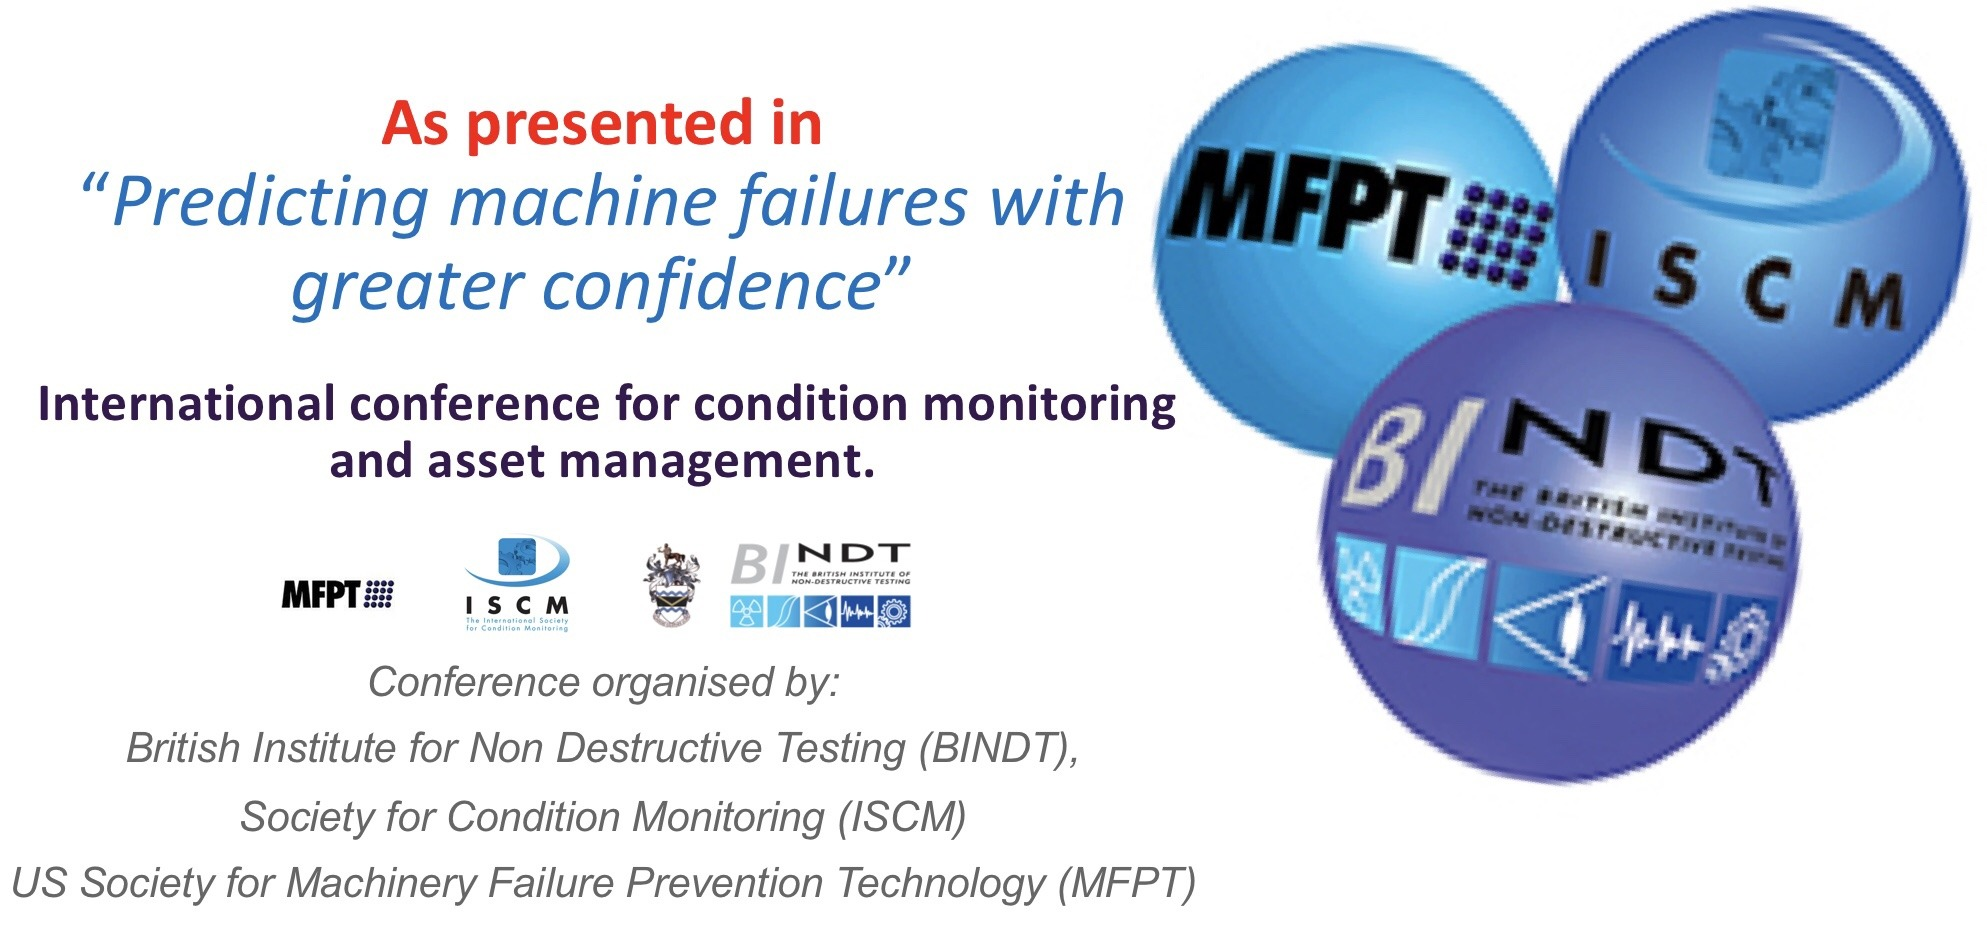 Bindt CM conference 2019, LubeWear explained. Oil analysis, failure modes reduced.